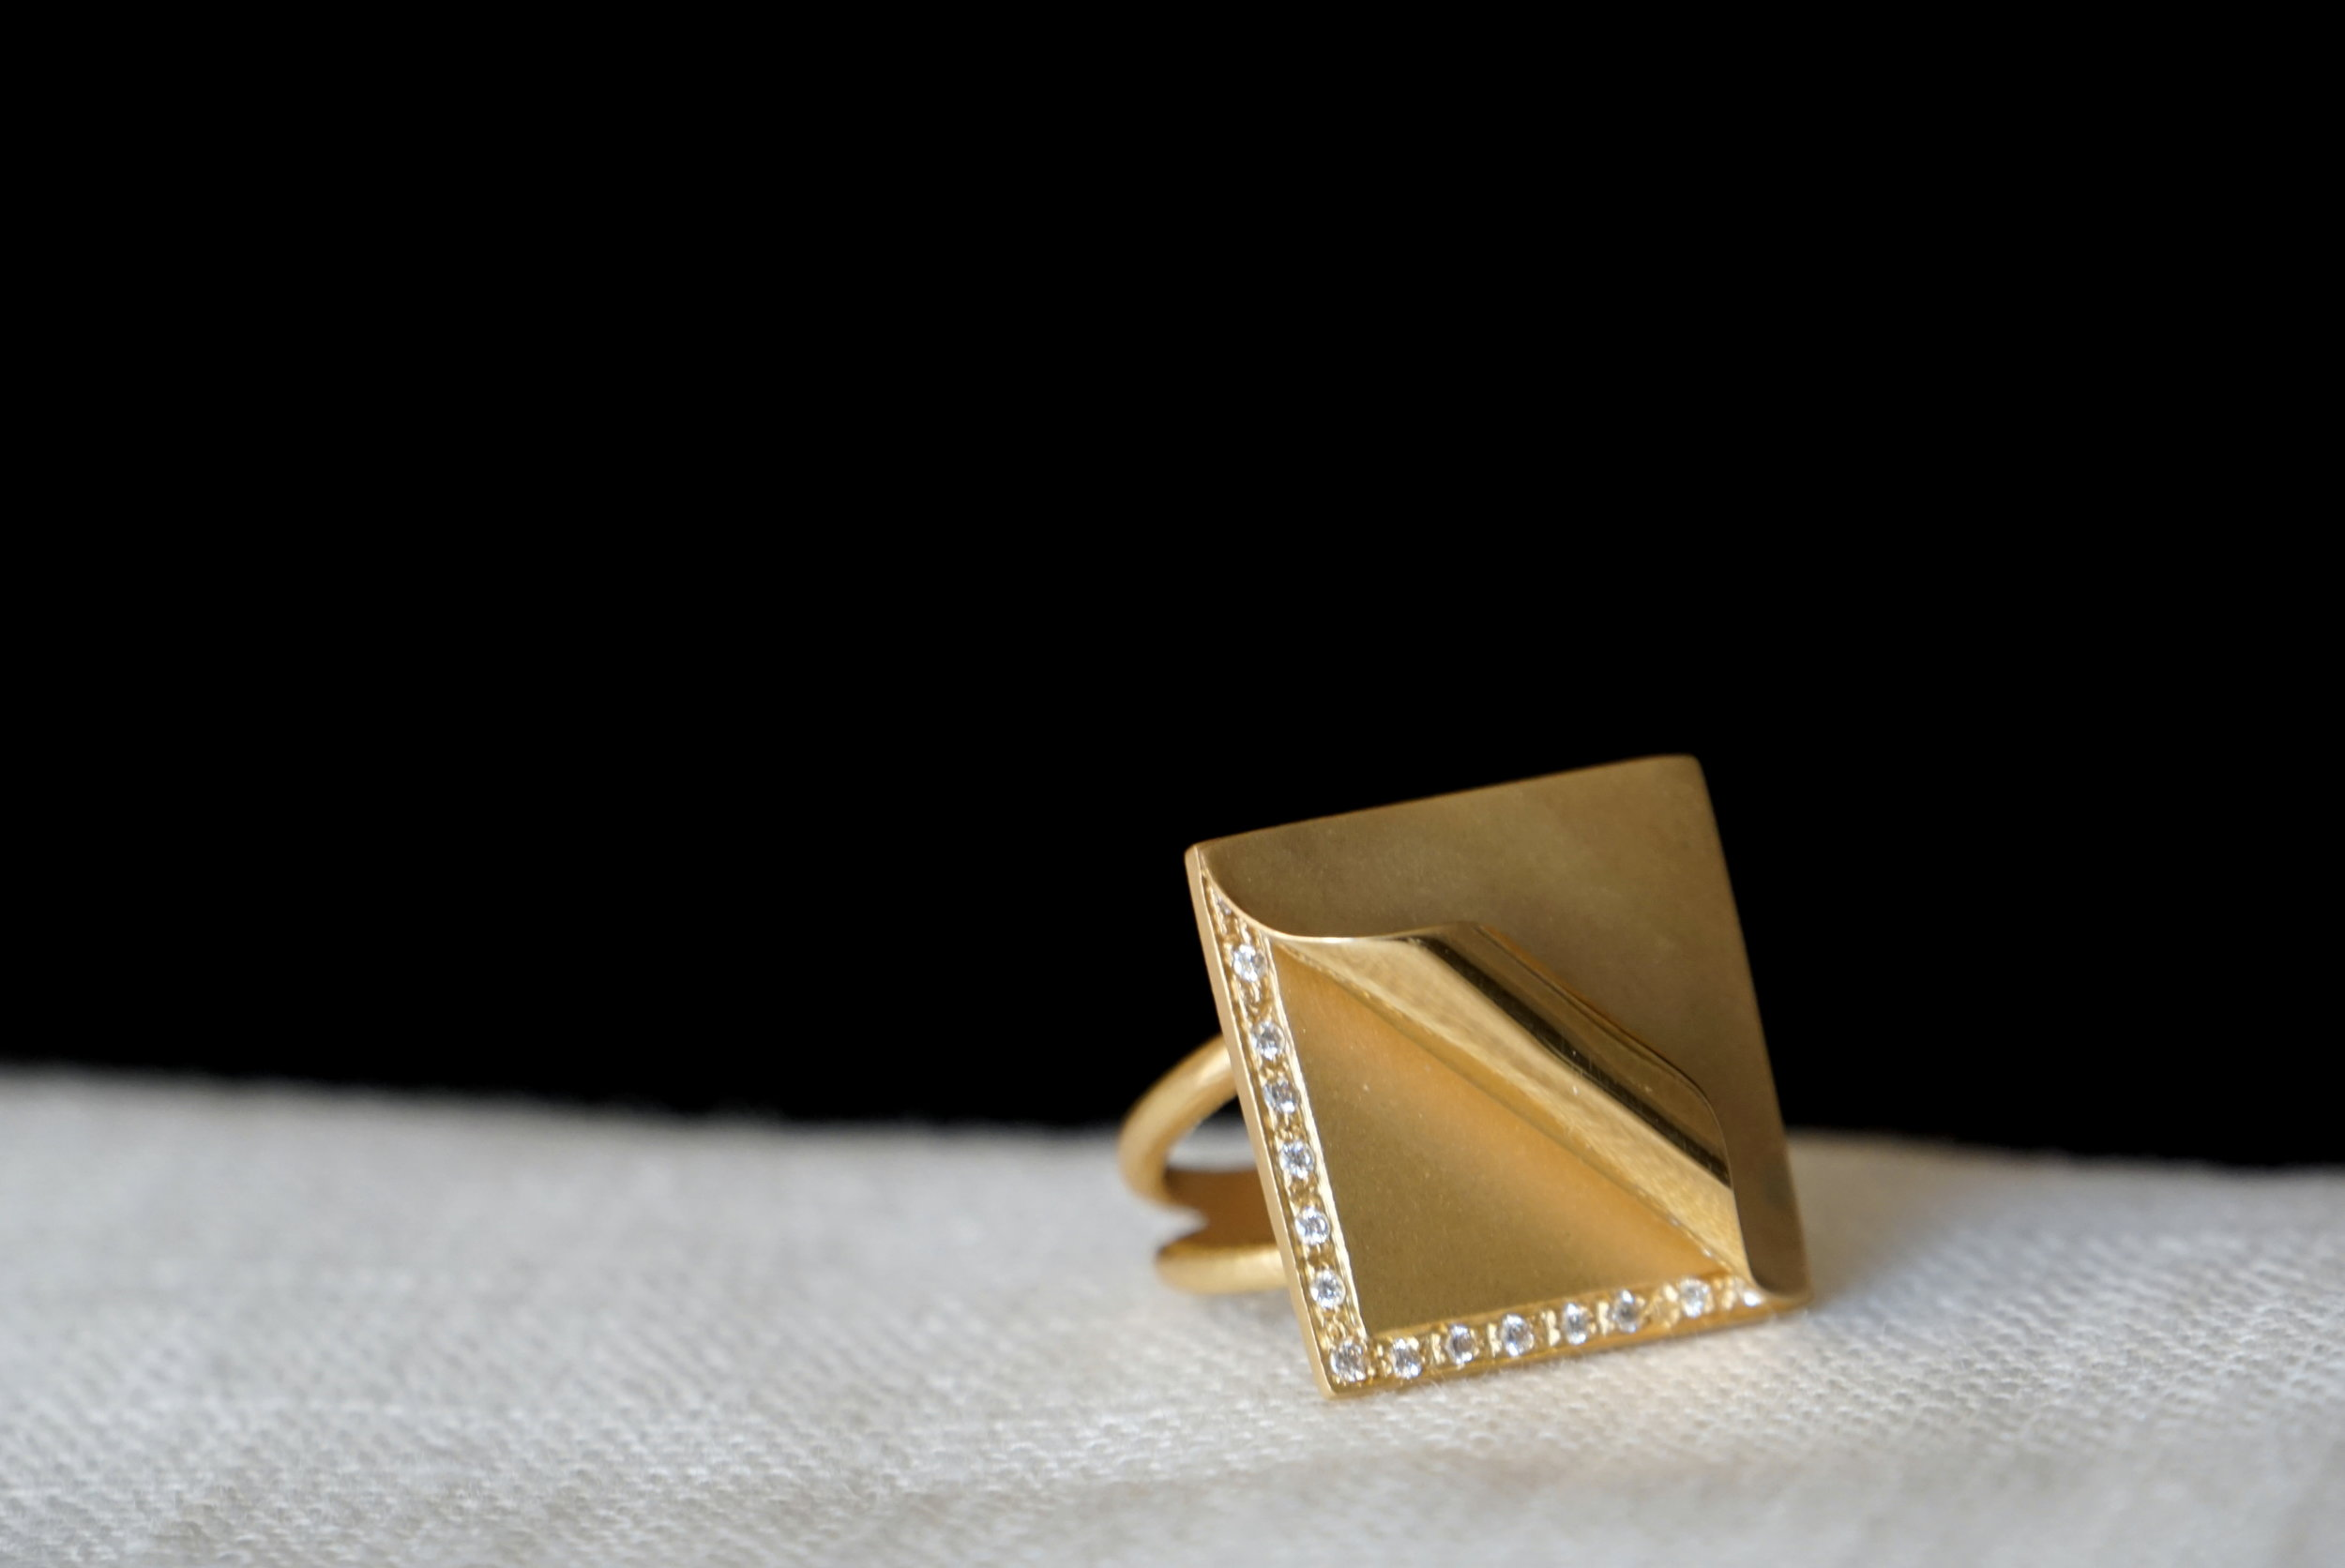 Uncovered,  hand-forged in 18K solid gold with white diamonds.